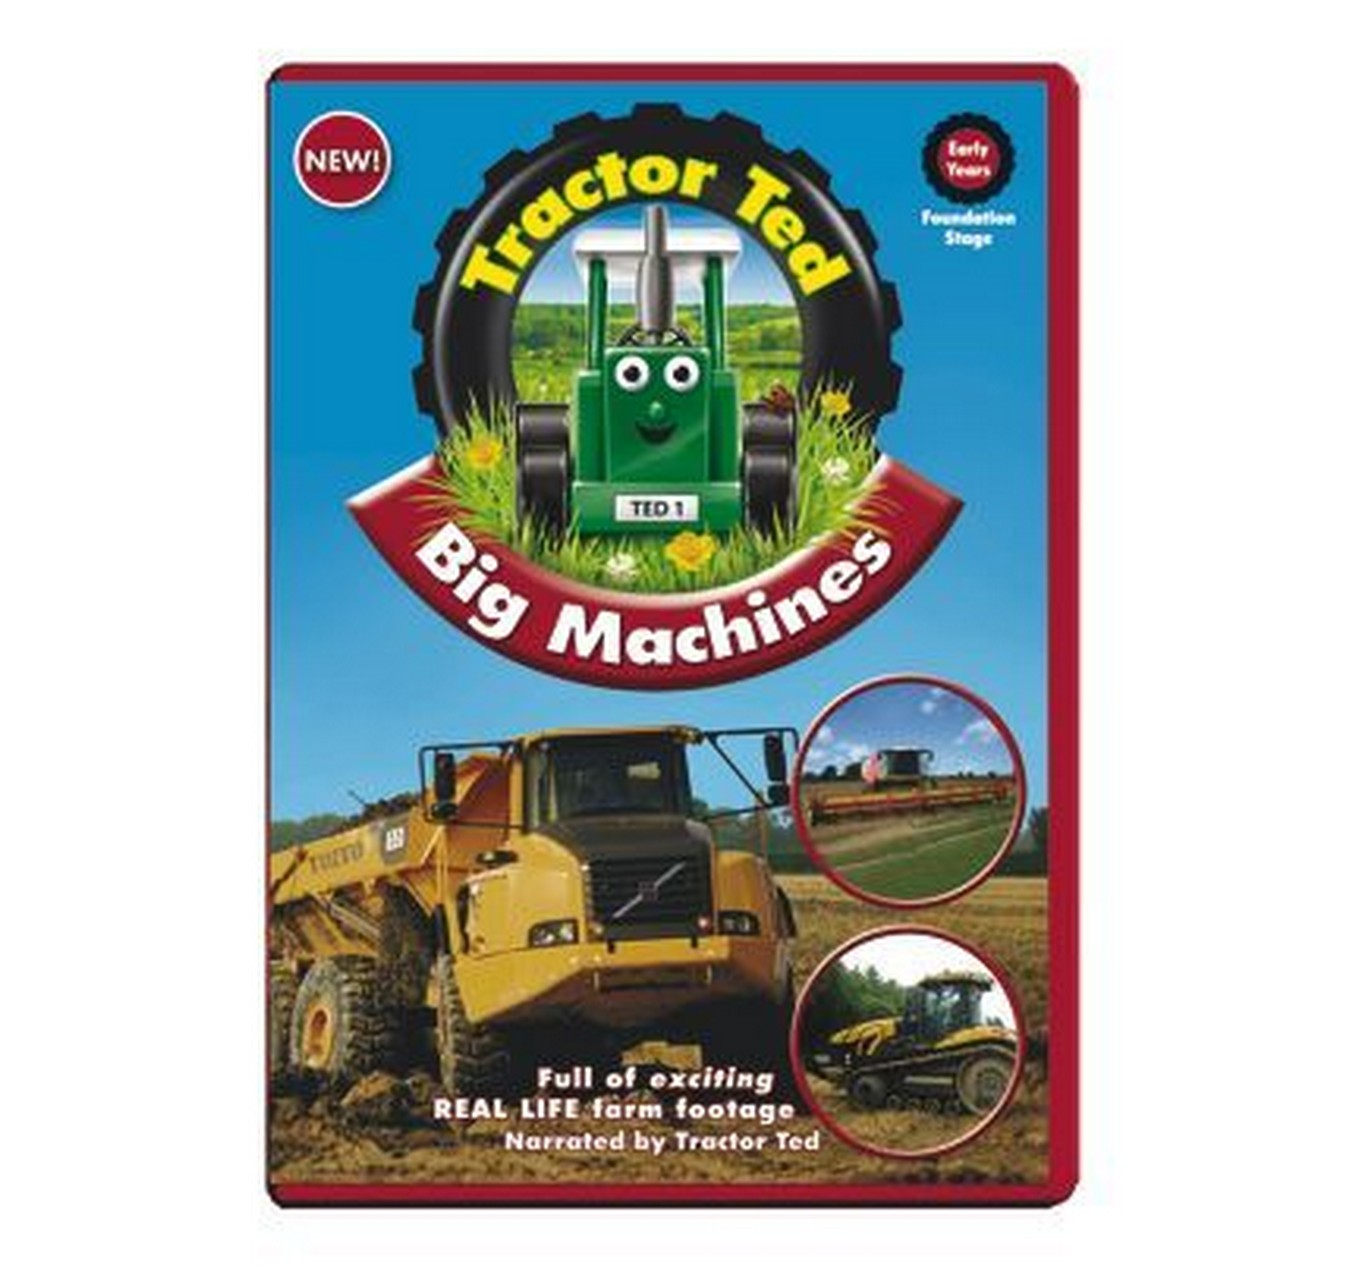 Big Machines DVD